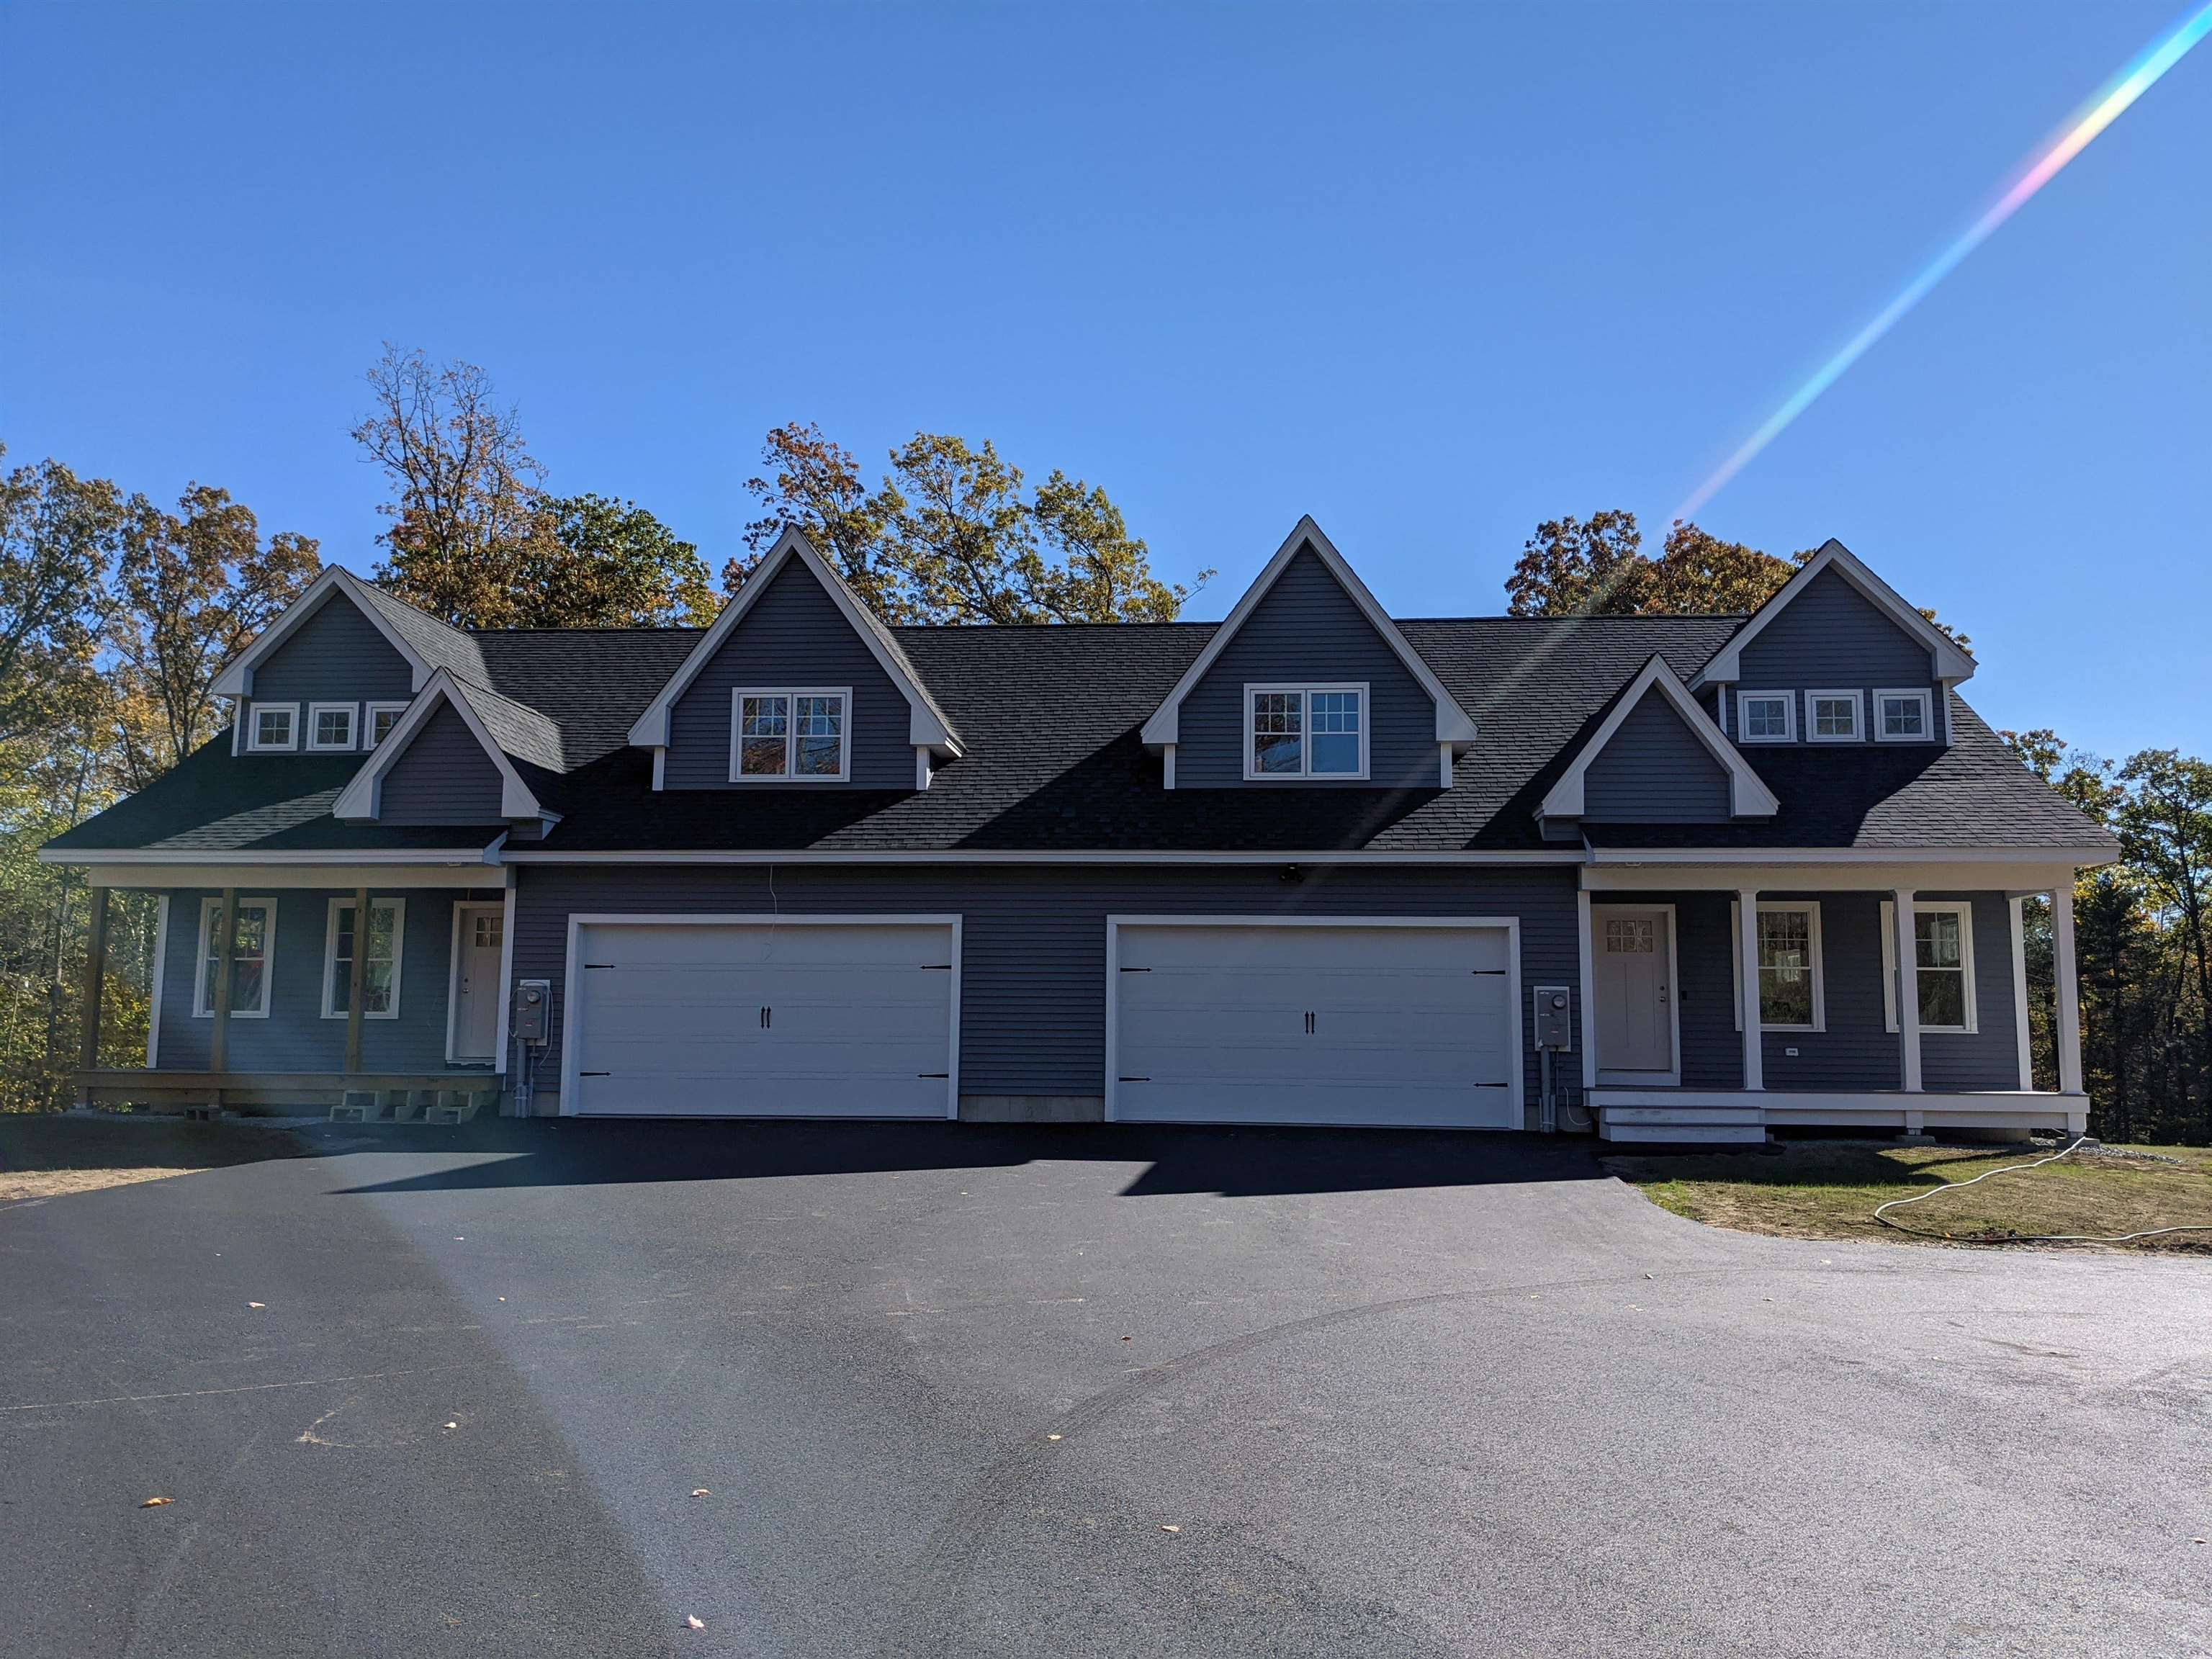 Photo of 102 South Road Fremont NH 03044